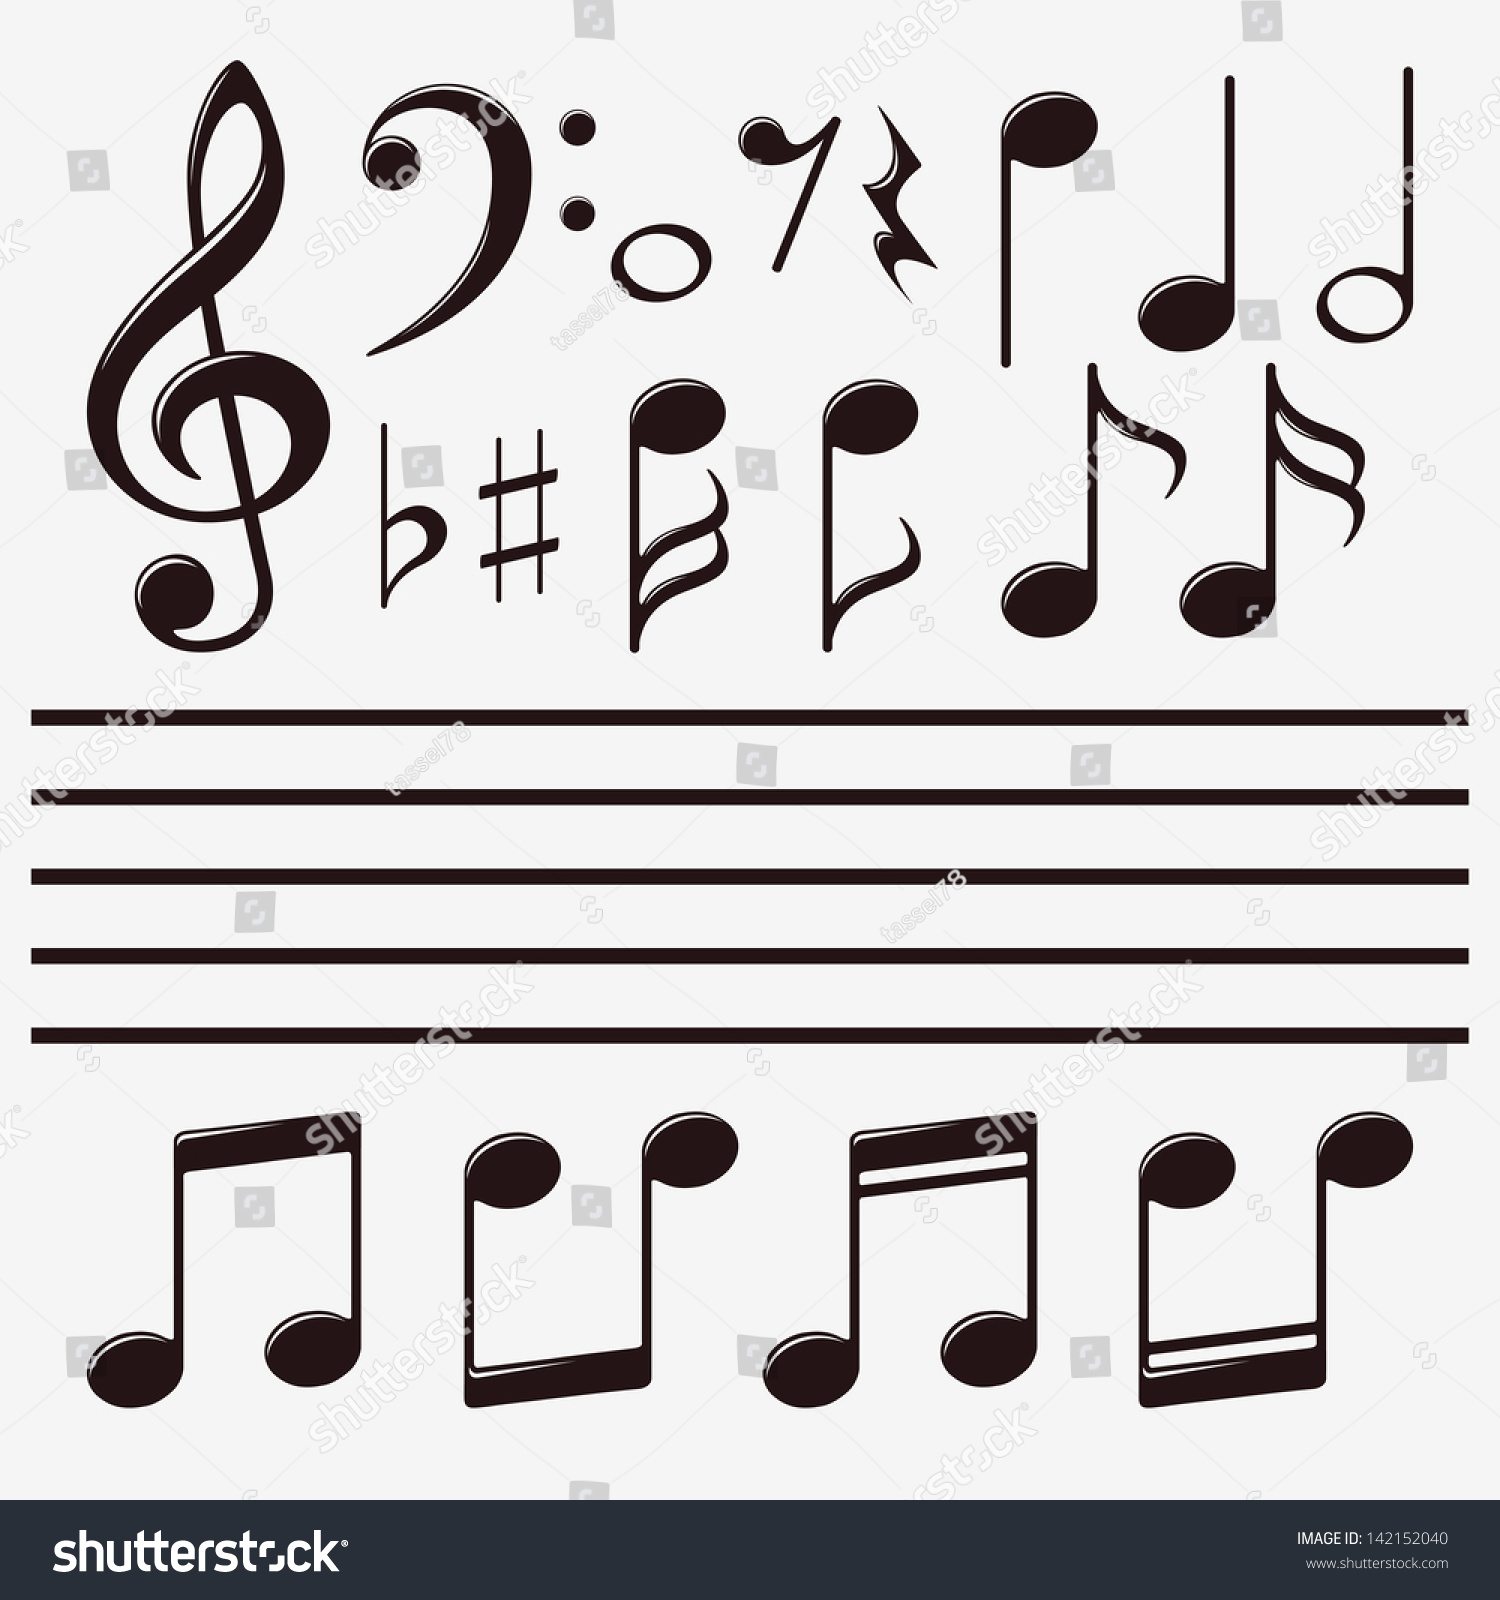 Musical notes staff background on white vector by tassel78 image - Vector Icons Set Music Note